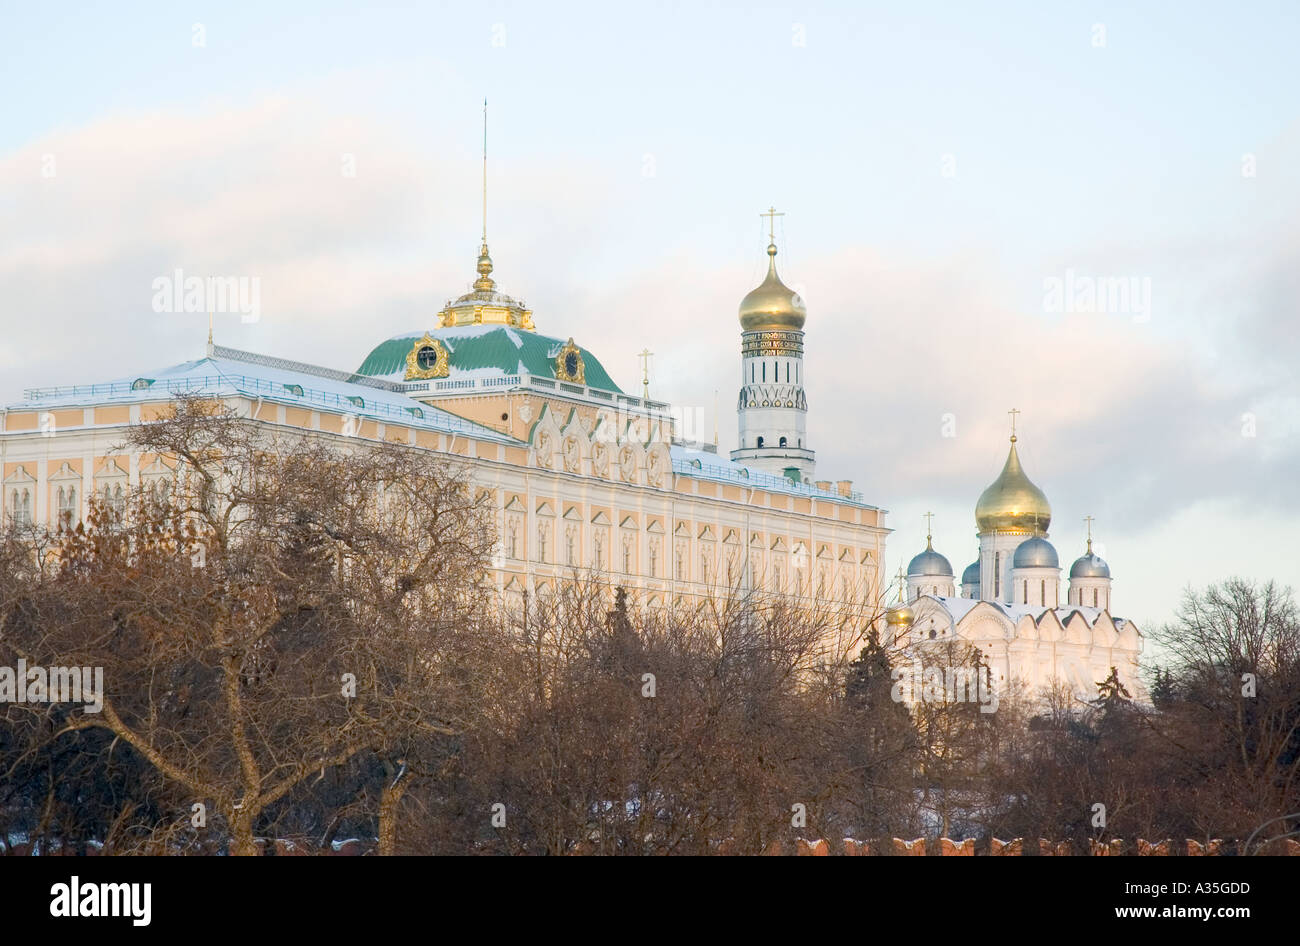 The Kremlin in Moscow - Stock Image